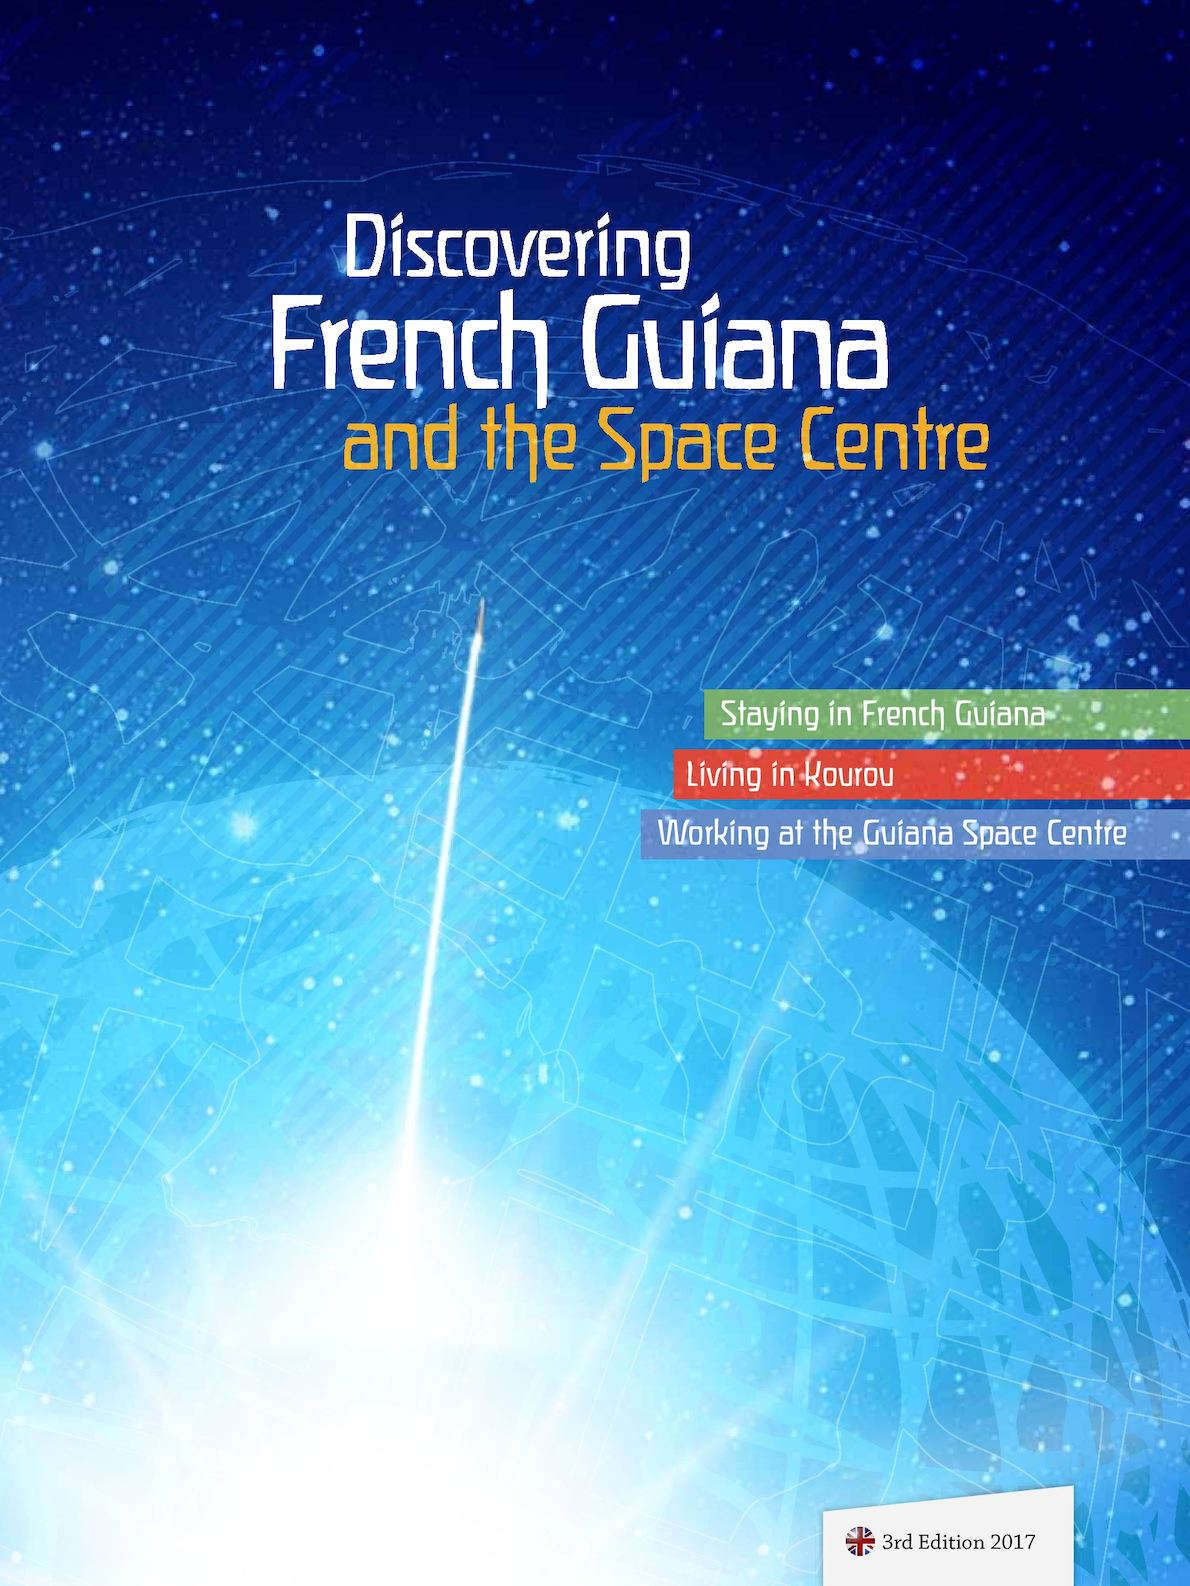 Calam O Blc Discovery Booklet French Guyana Kourou And The